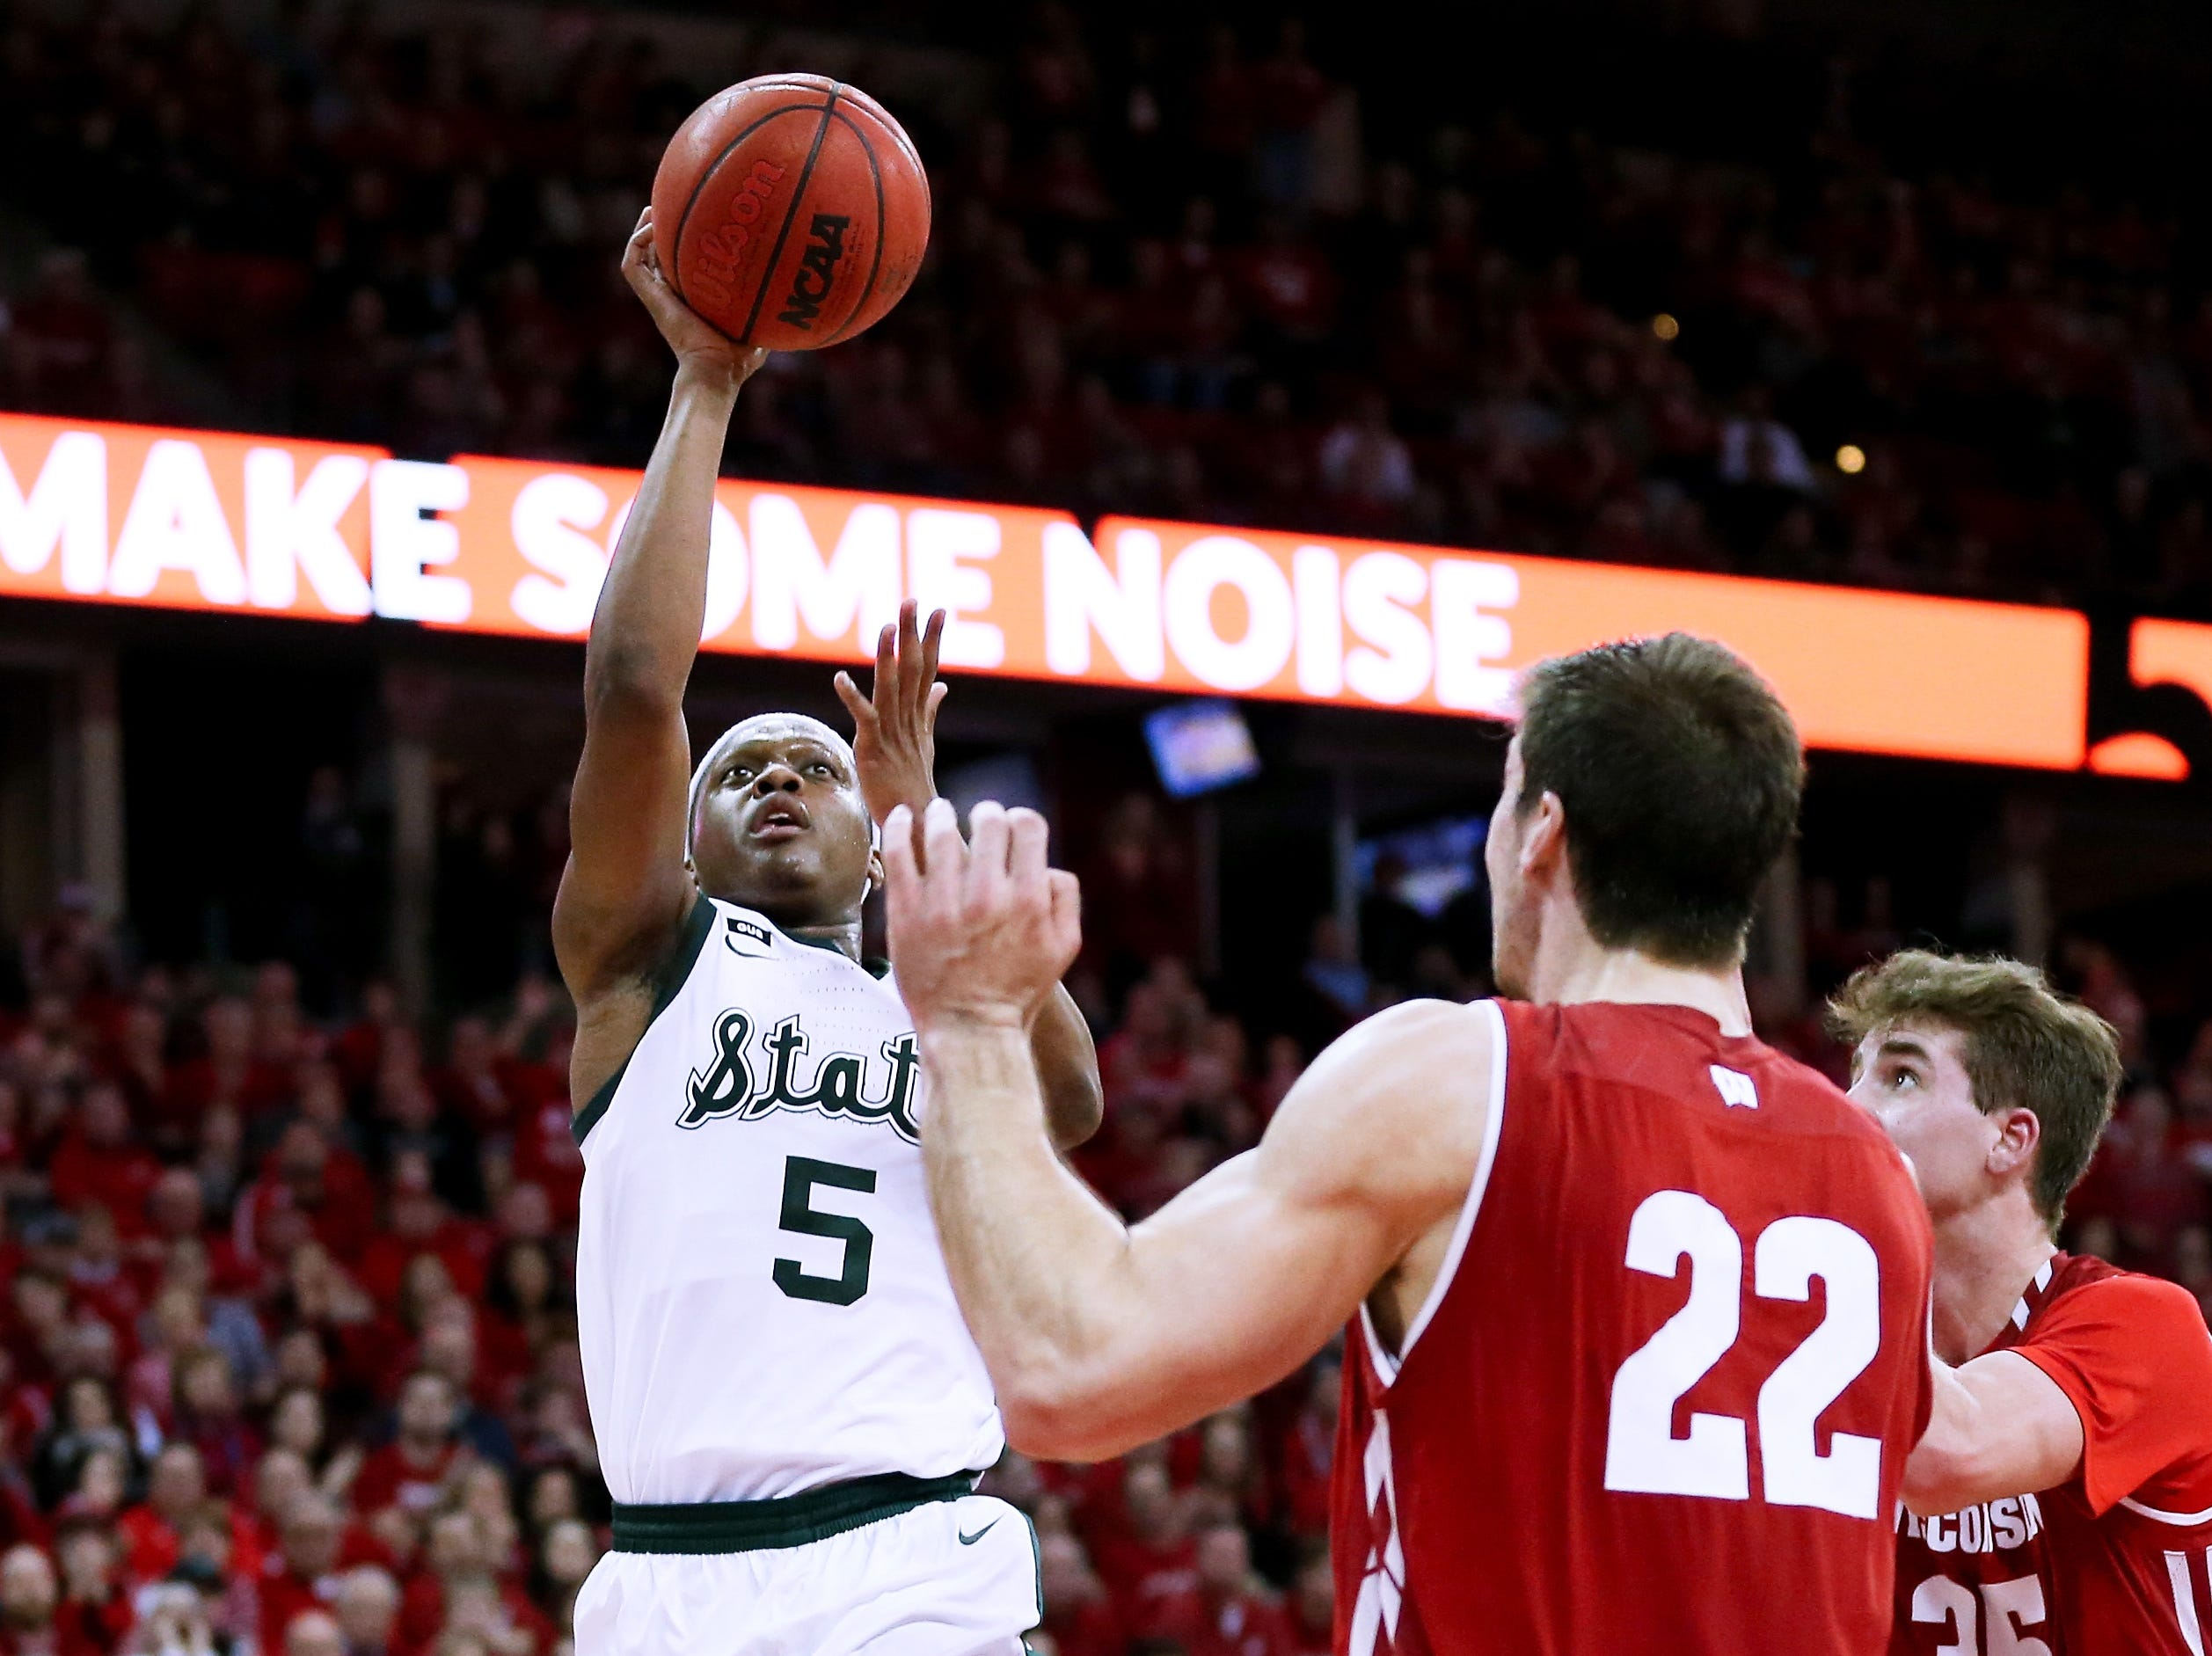 Cassius Winston #5 of the Michigan State Spartans attempts a shot while being guarded by Ethan Happ #22 of the Wisconsin Badgers in the second half at the Kohl Center on February 12, 2019 in Madison, Wisconsin.